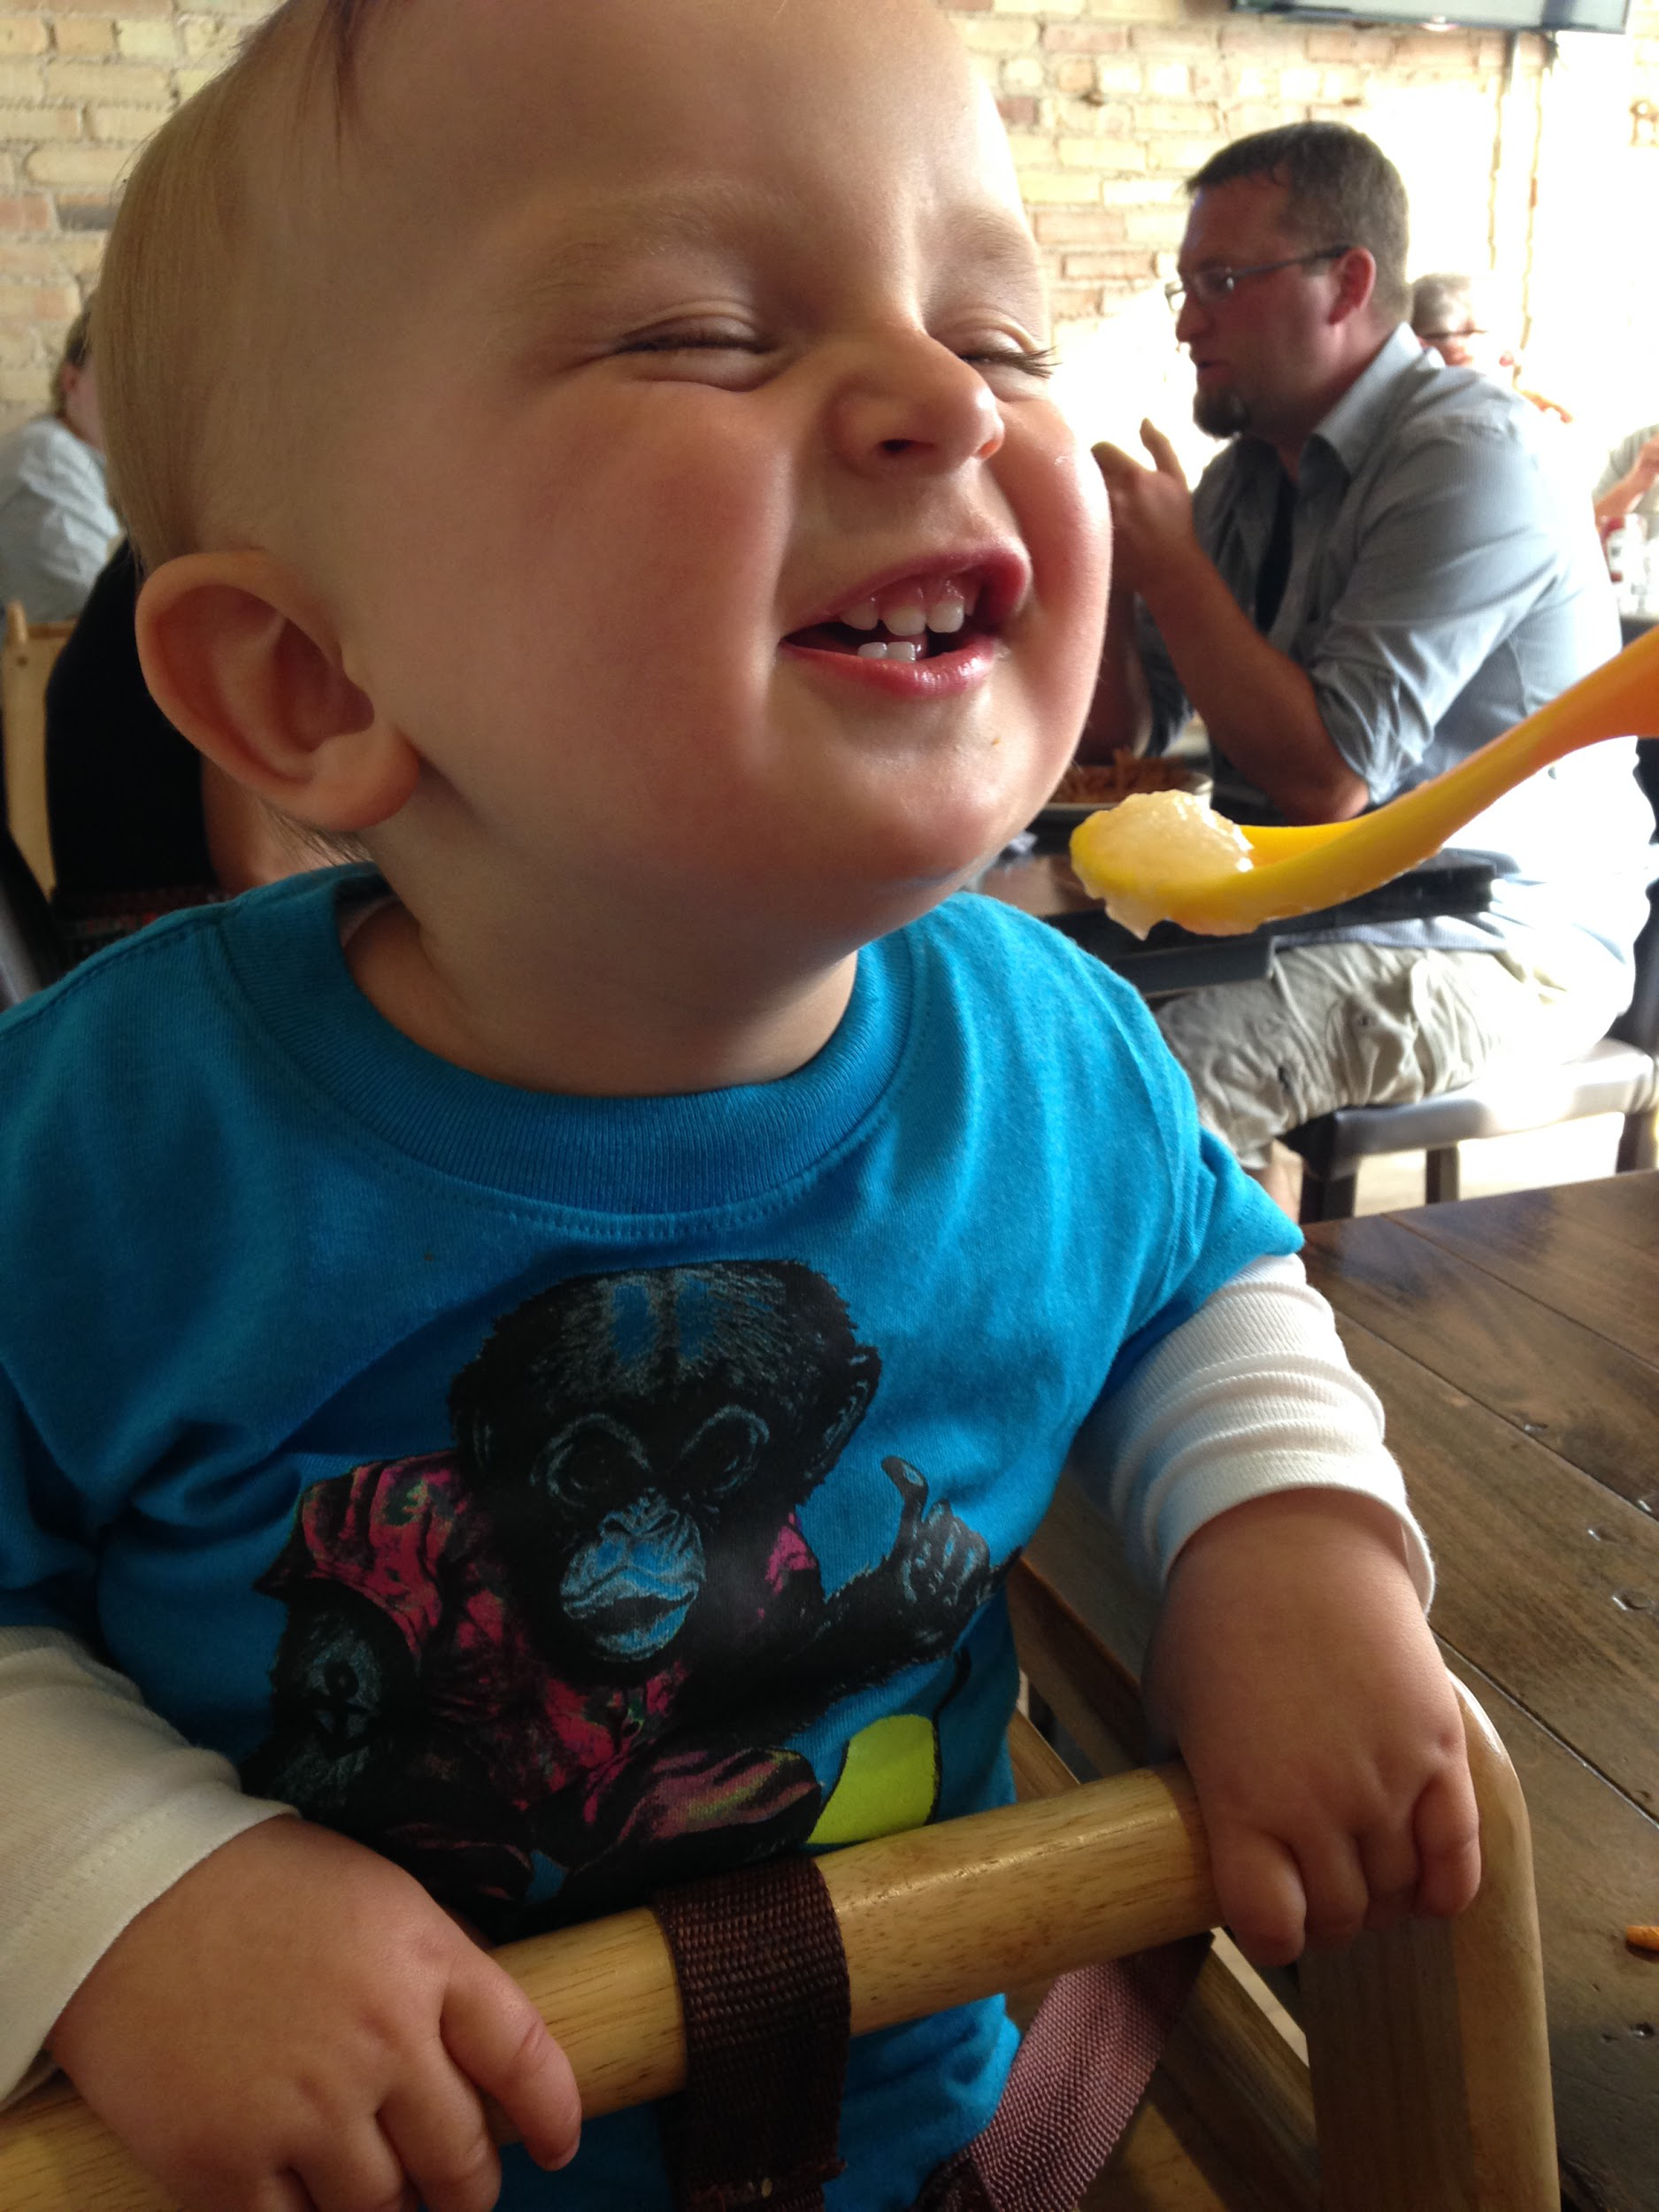 Harvey enjoying some applesauce at when he was 1.5 years old and pictures of the kids' plates